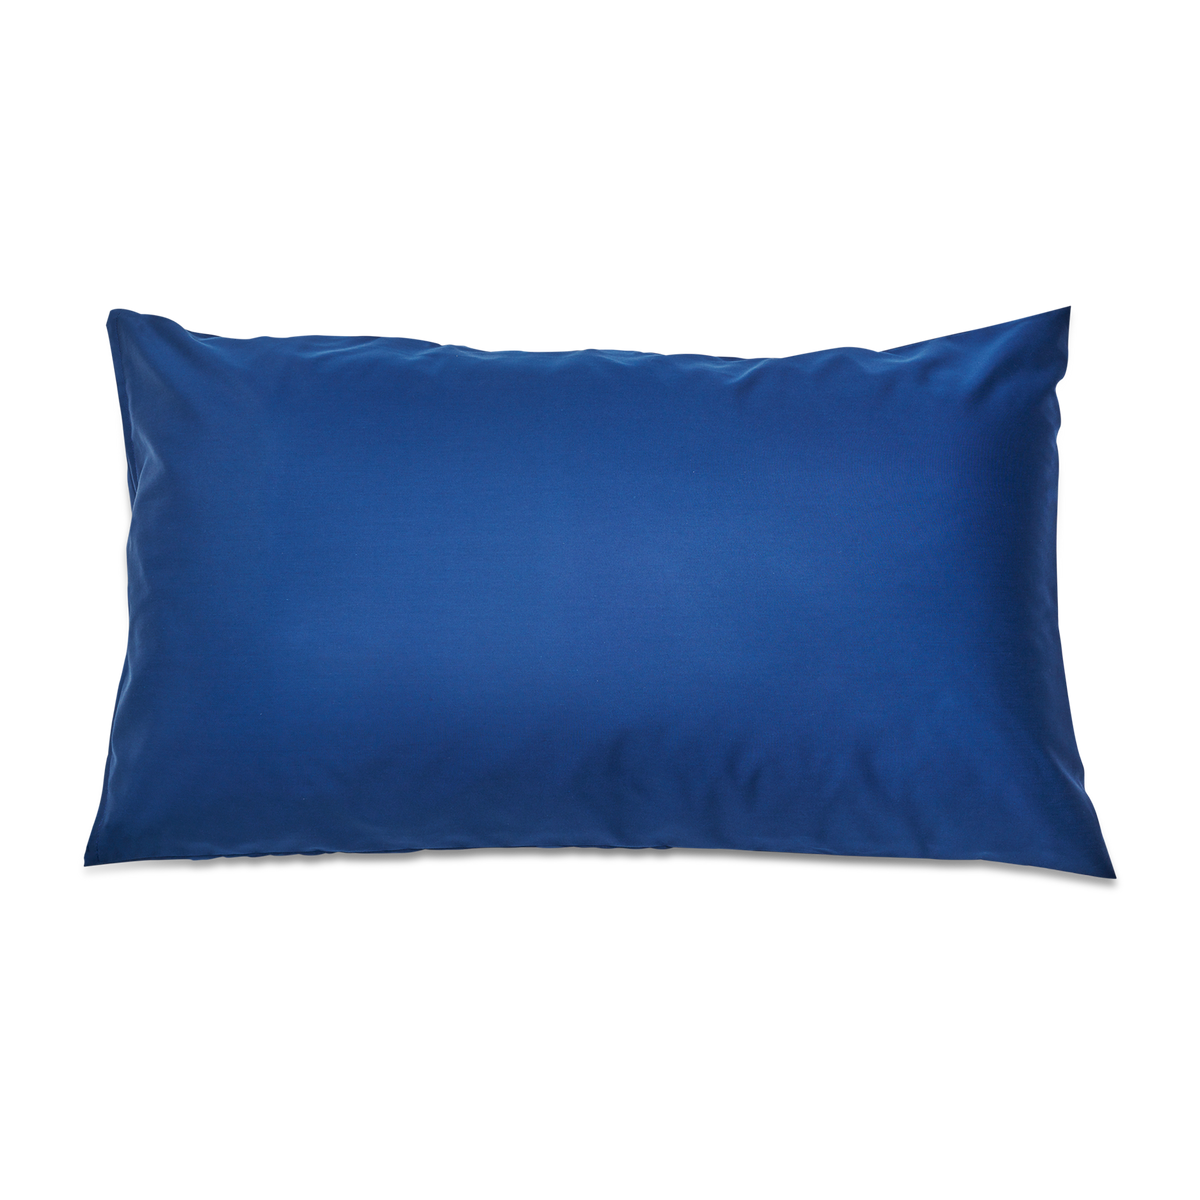 Essential Collection Percale Pillowcases in Navy | Skylark+Owl Linen Co.